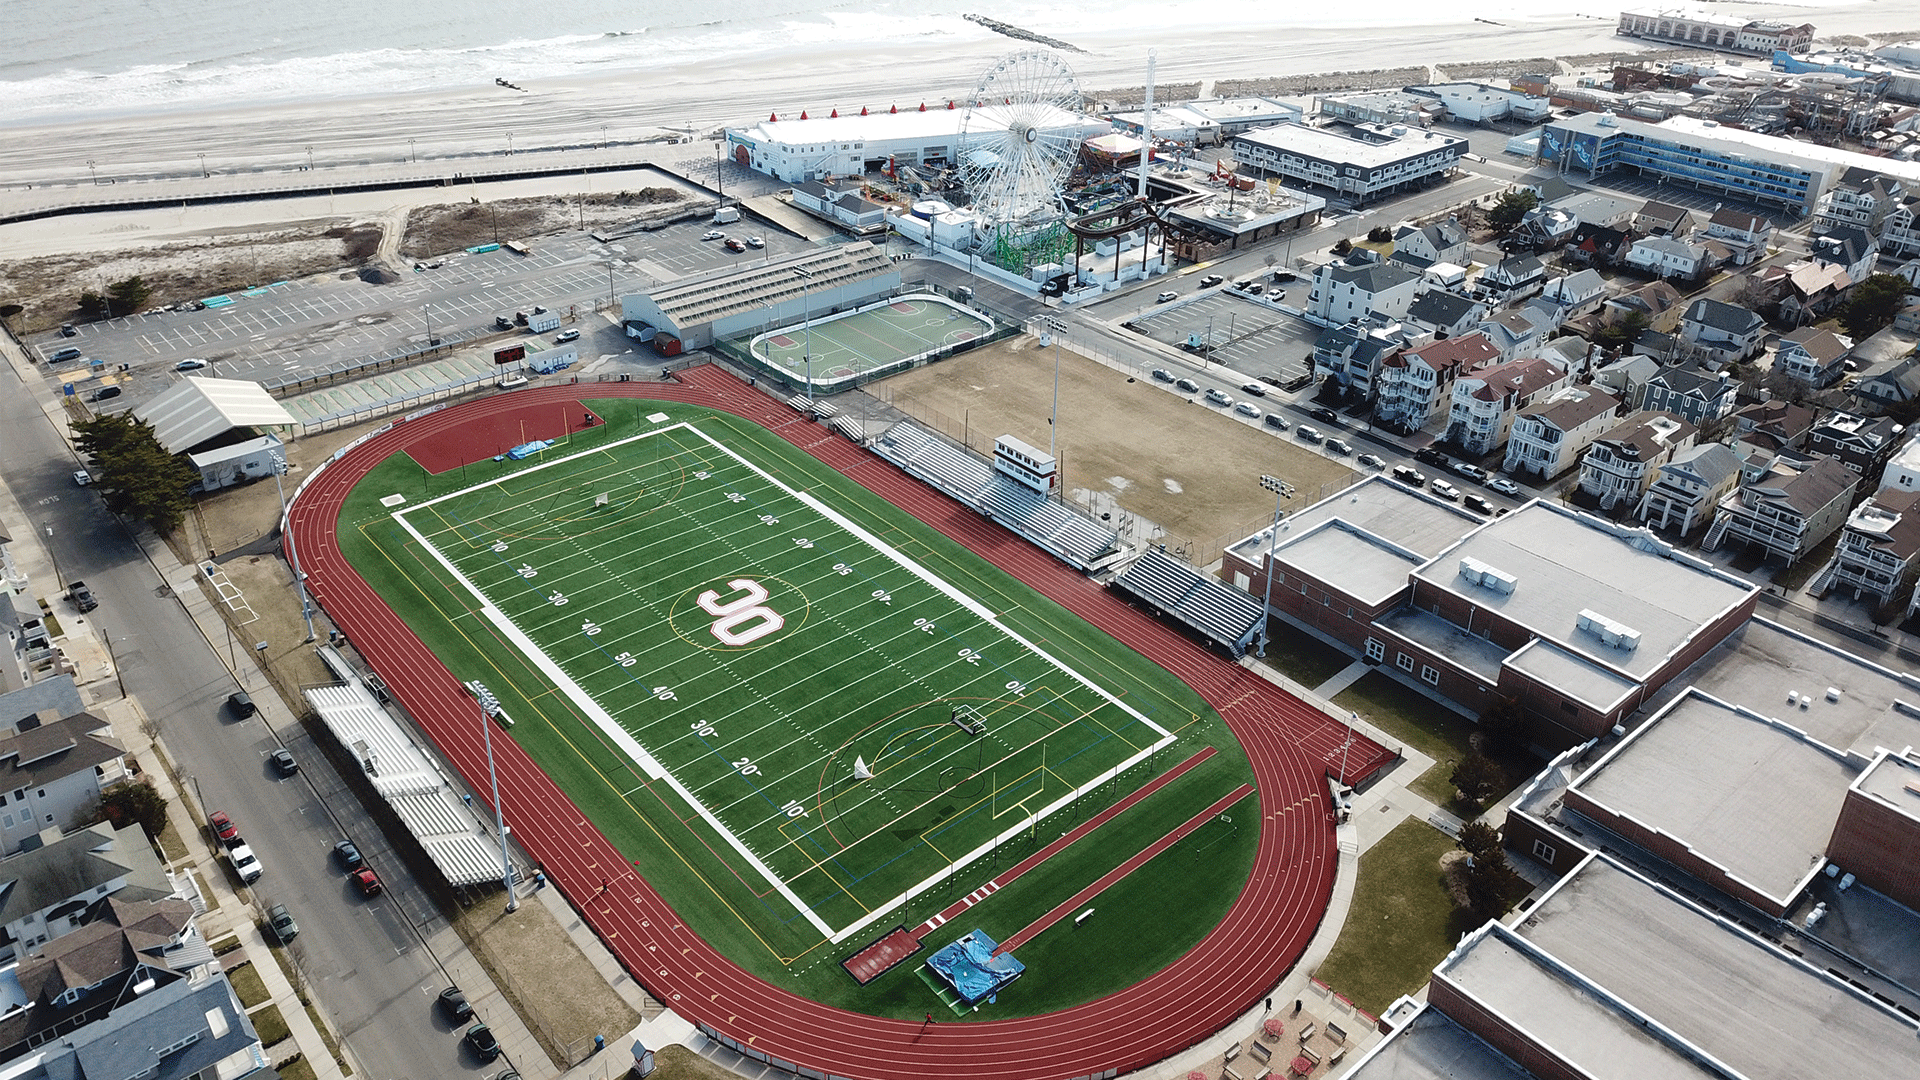 FieldTurf's Popularity in New Jersey Continues as Ocean City HS Welcomes New Field - FieldTurf